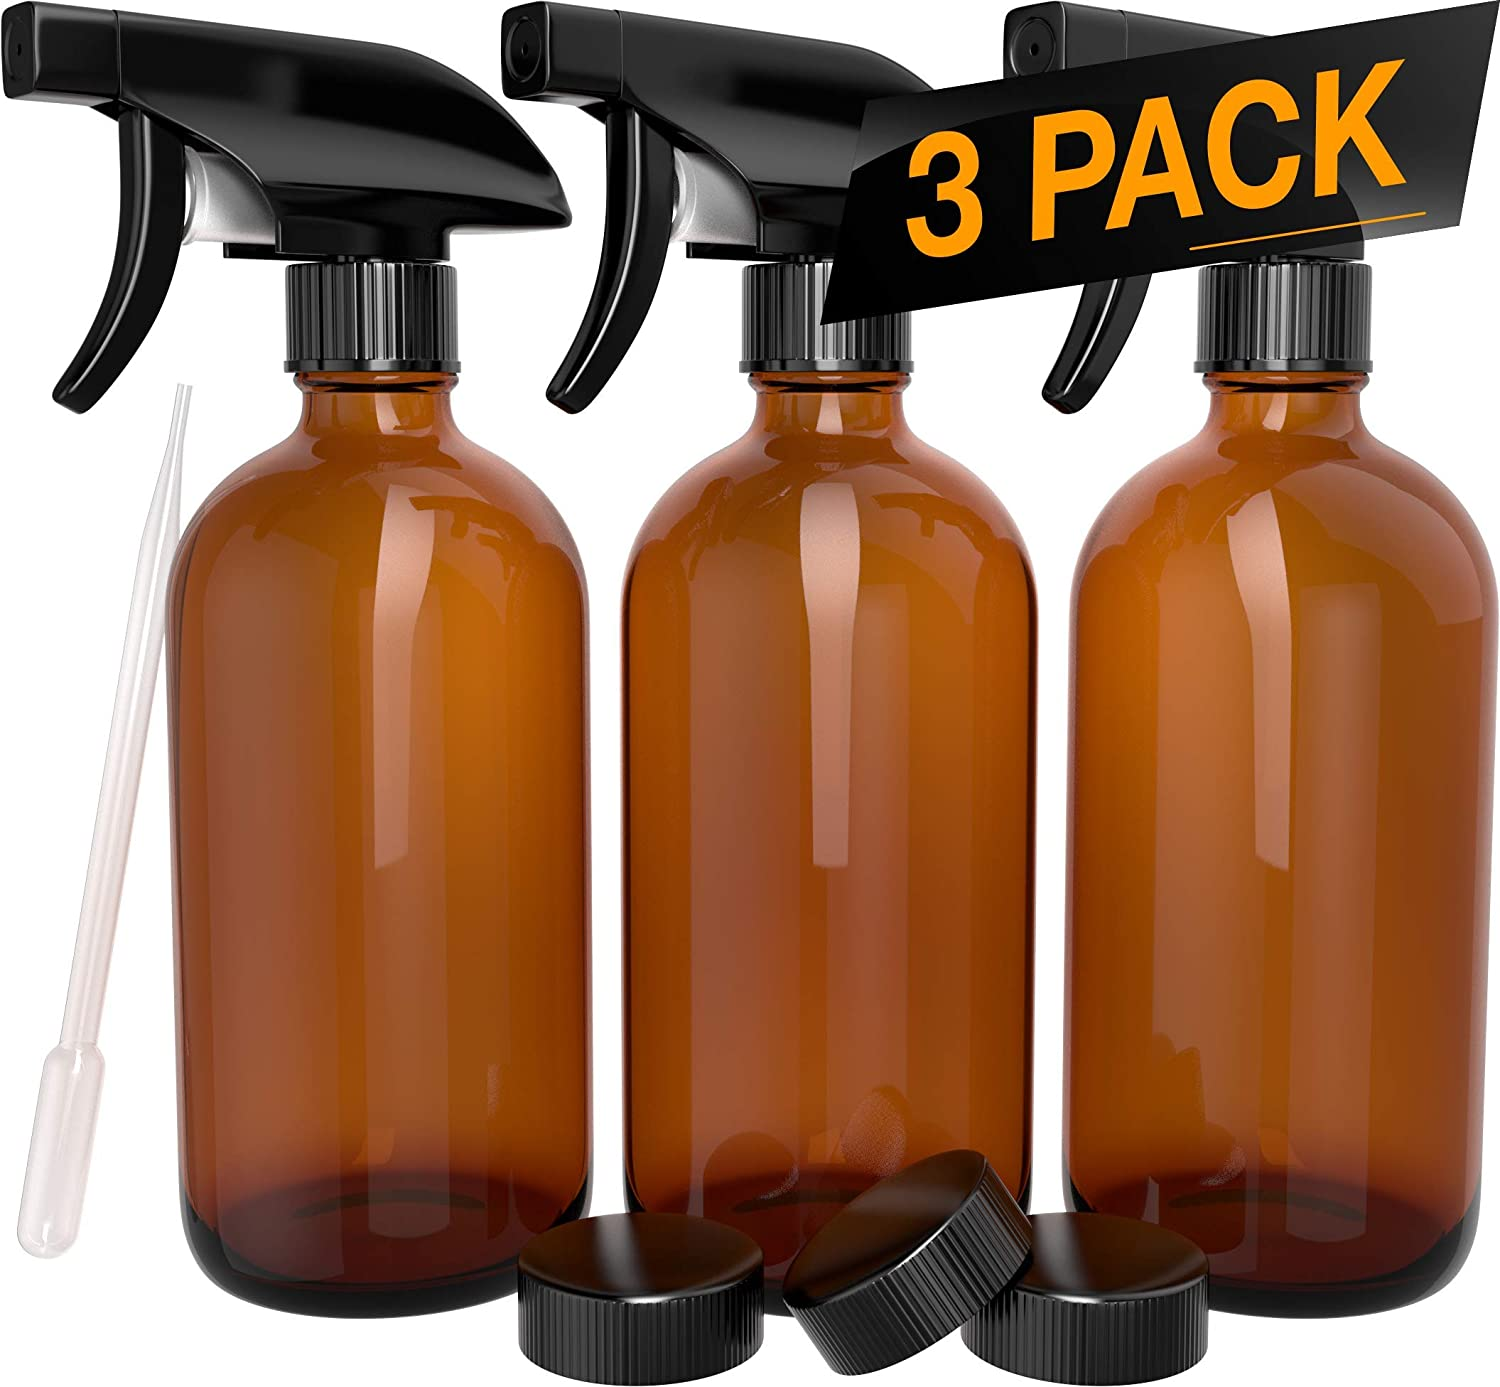 9b10a612c526 Nylea 3 Pack Refillable 16 oz Amber Glass Spray Bottles [Free Phenolic Cap  and Plastic Pipette] - Empty...